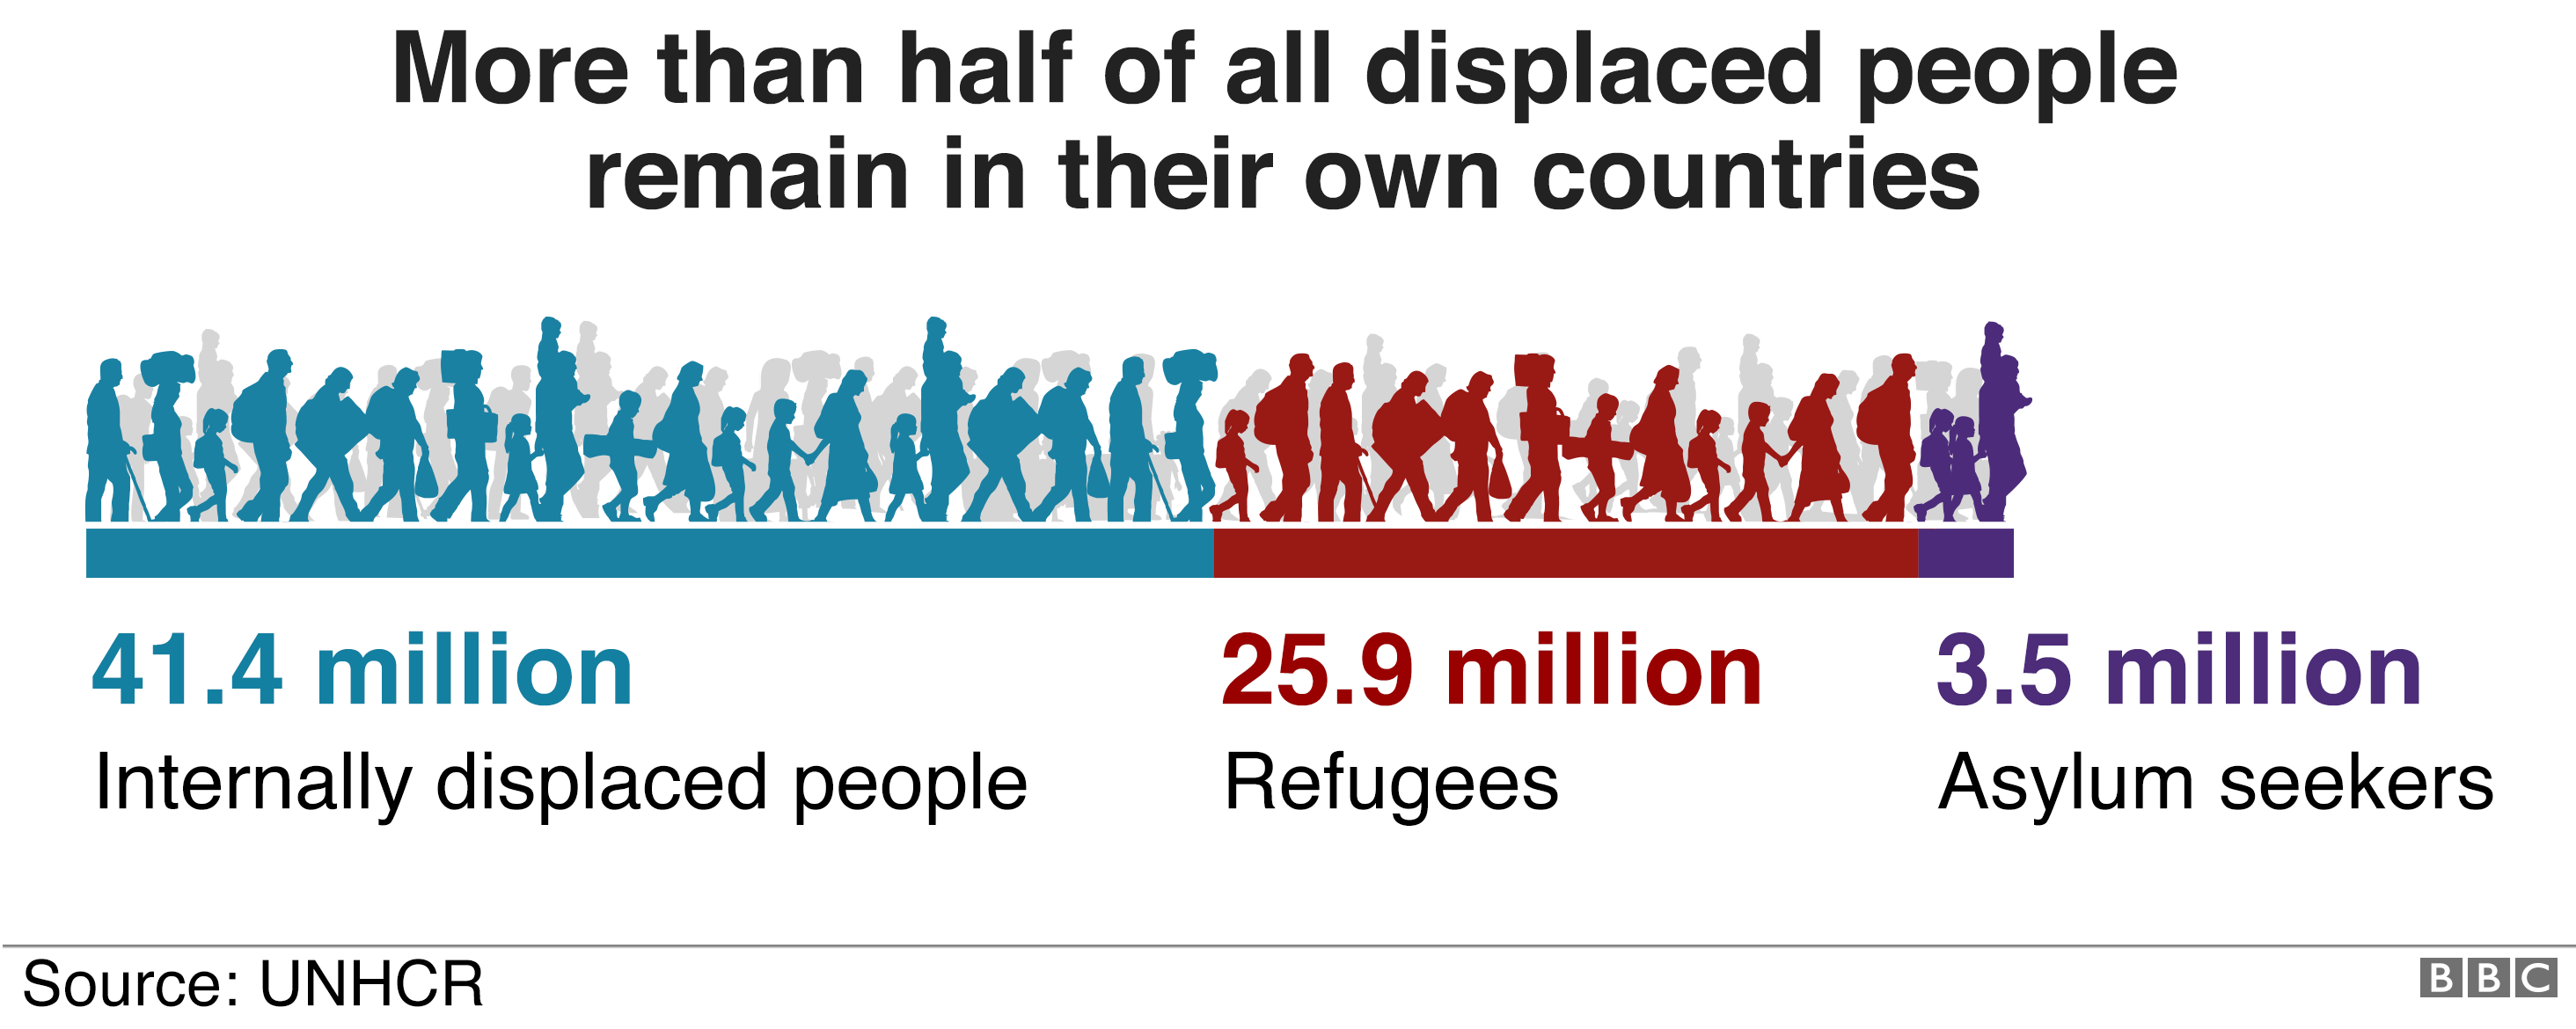 Graphic showing that more than half of displaced people globally remain in their own country